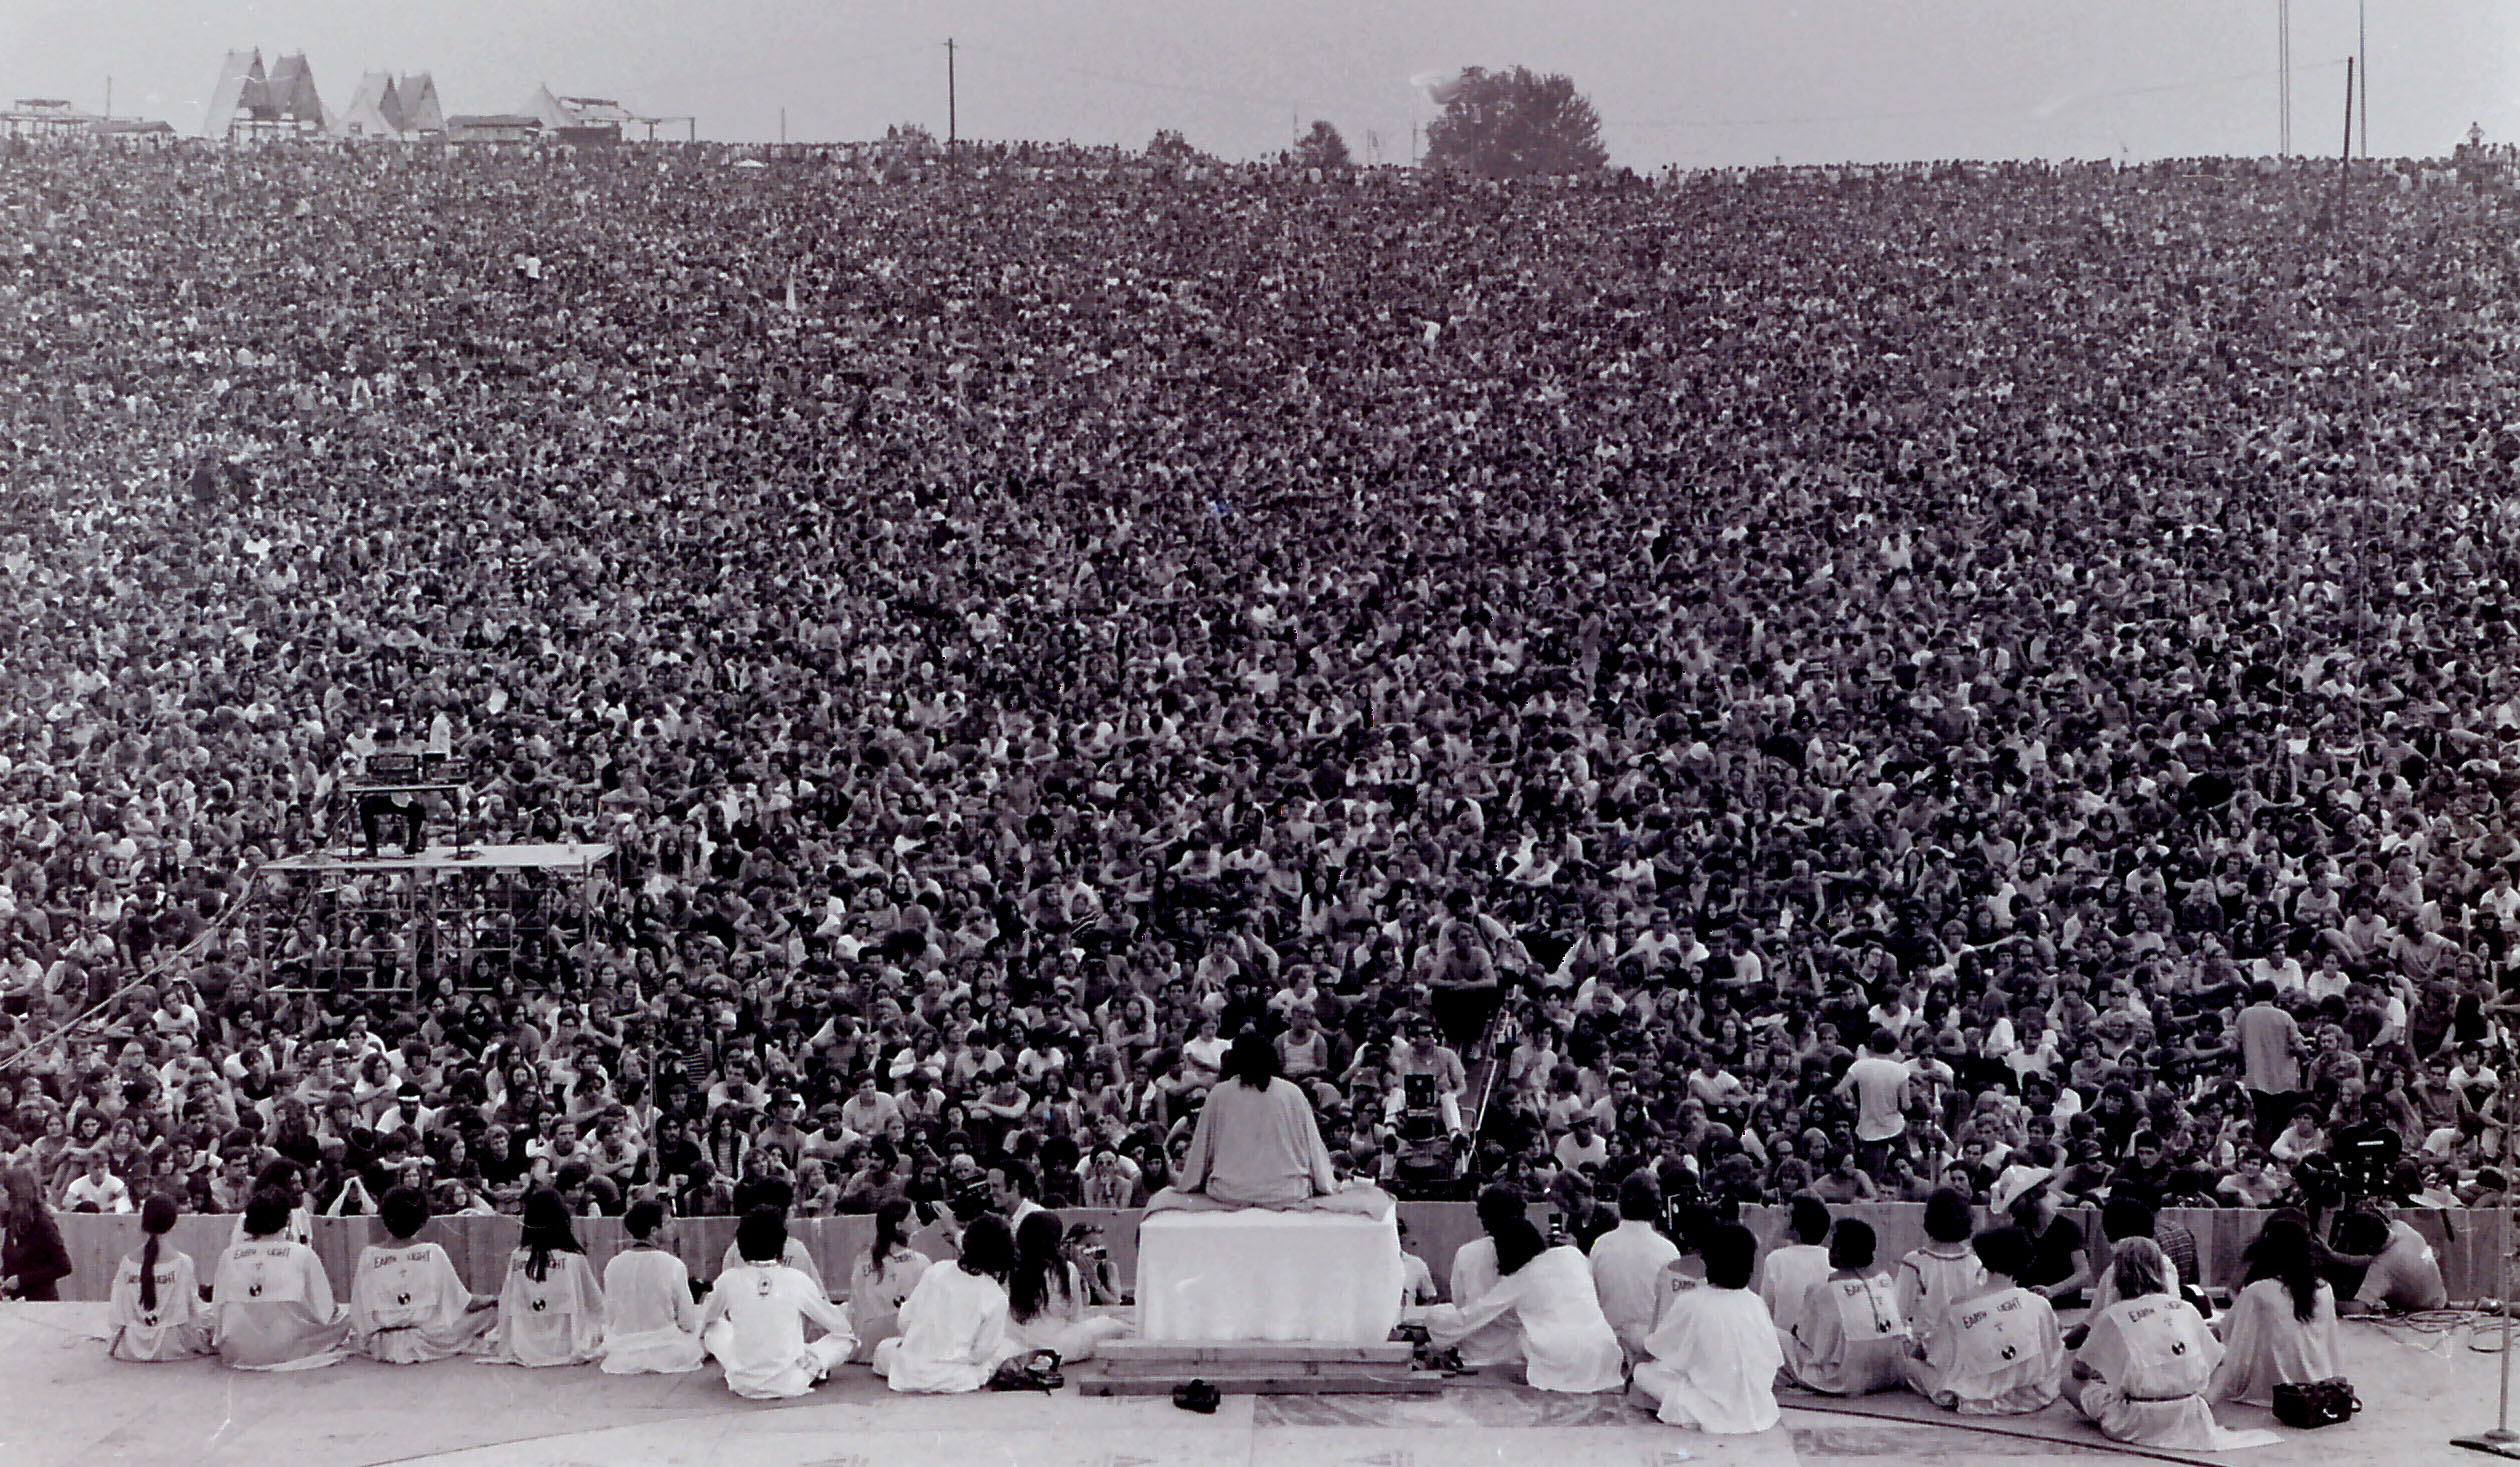 Cérémonie d'ouverture de Woodstock, le 15 août 1969, photo par Mark Goff [Public domain], via Wikimedia Commons